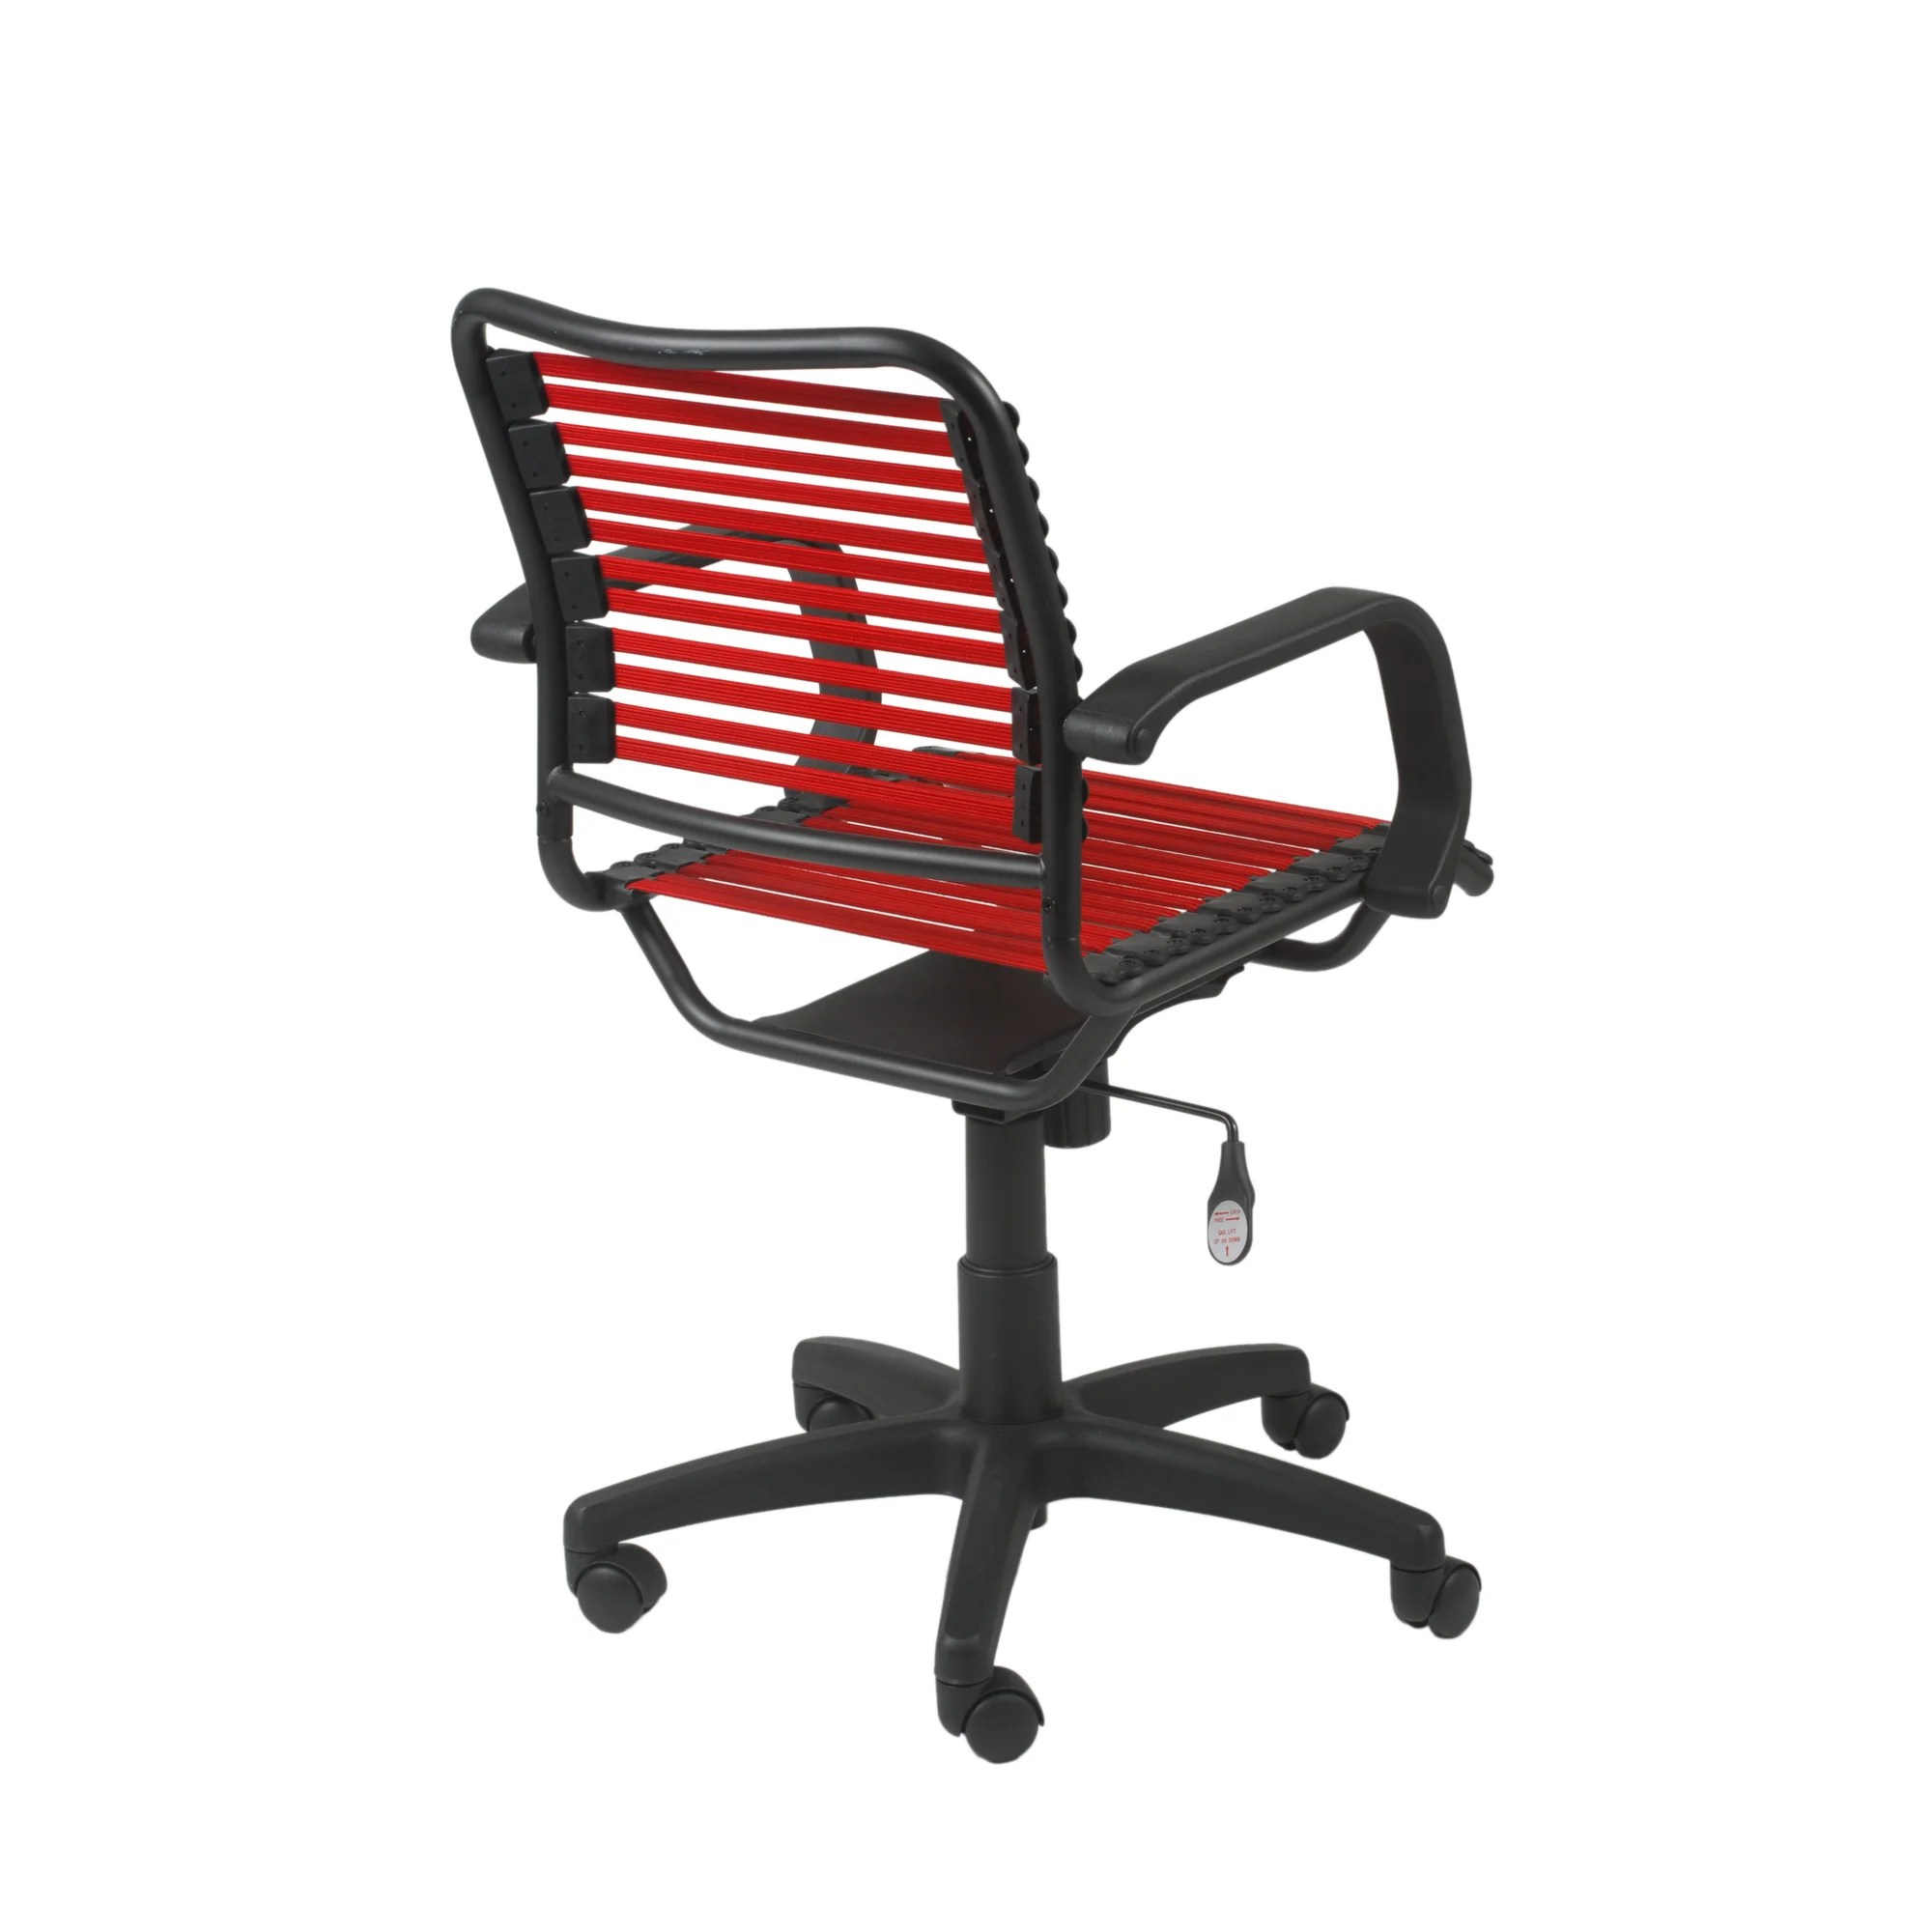 Bungie Office Chair Mercury Row Belin Bungee Desk Chair And Reviews Wayfair Ca